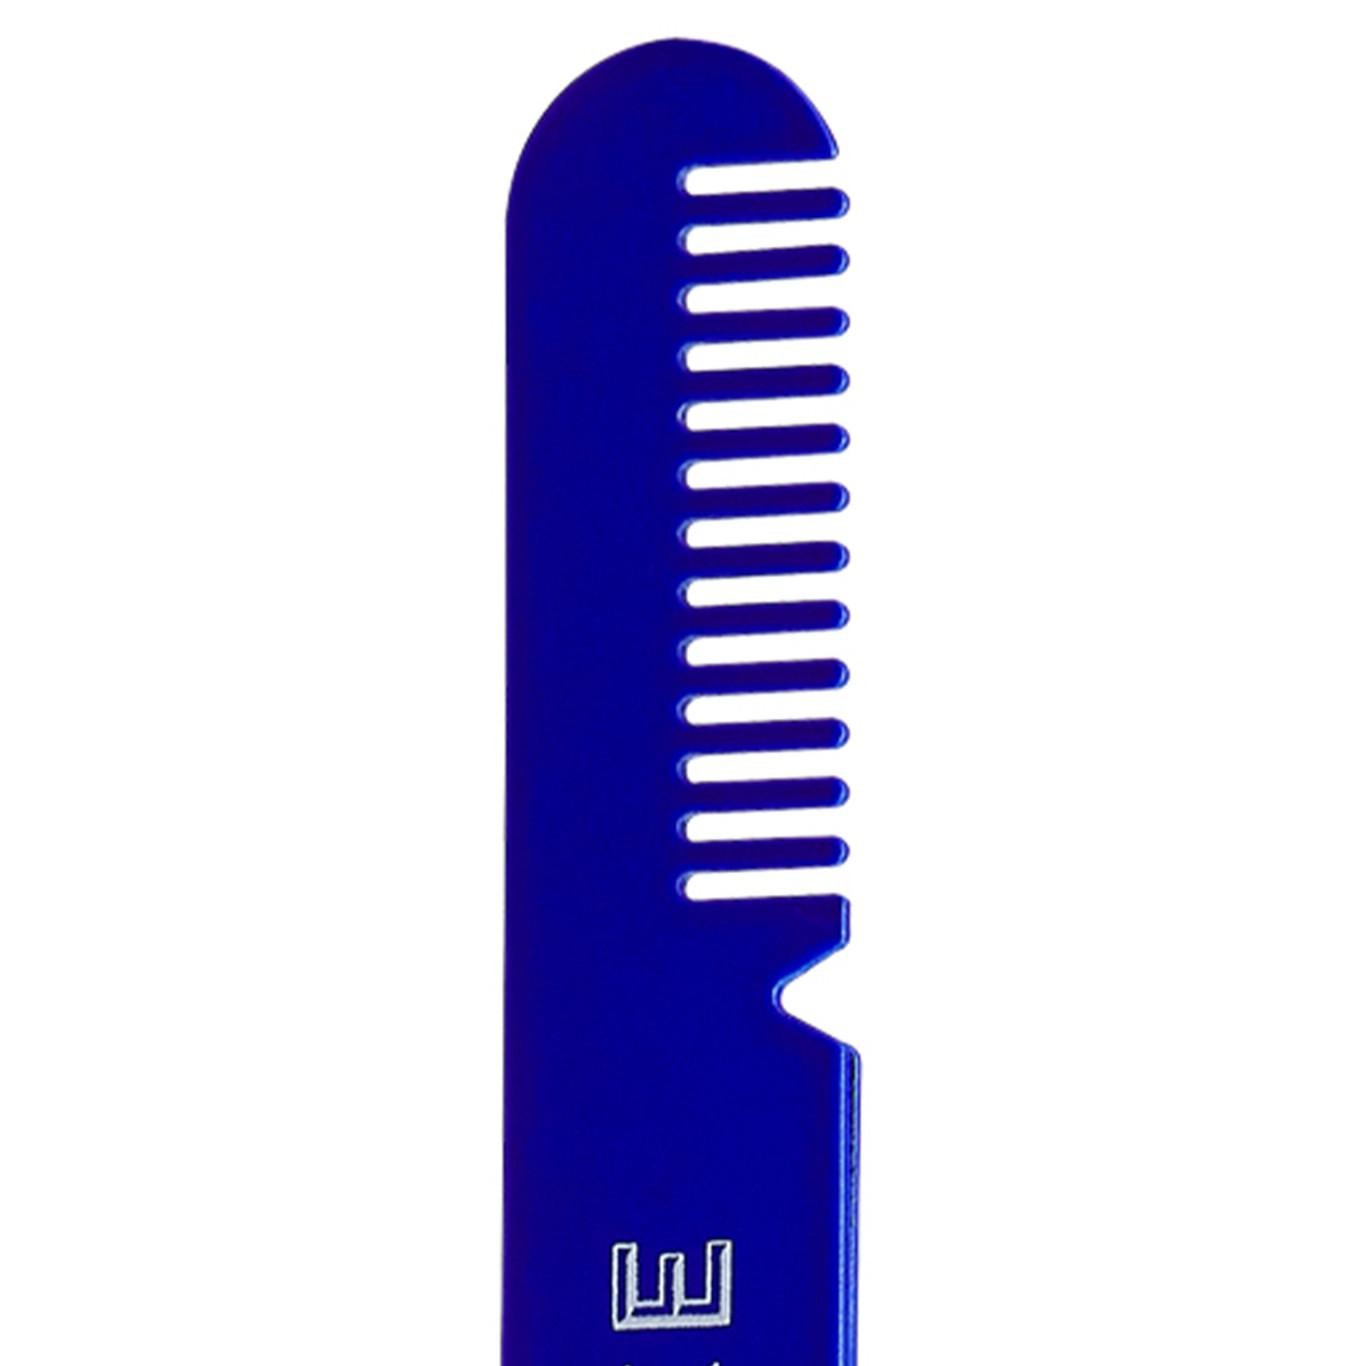 Treslúce Beauty Becky Made Me Do It Collection Super Fácil 2 in 1 Lash Applicator Comb